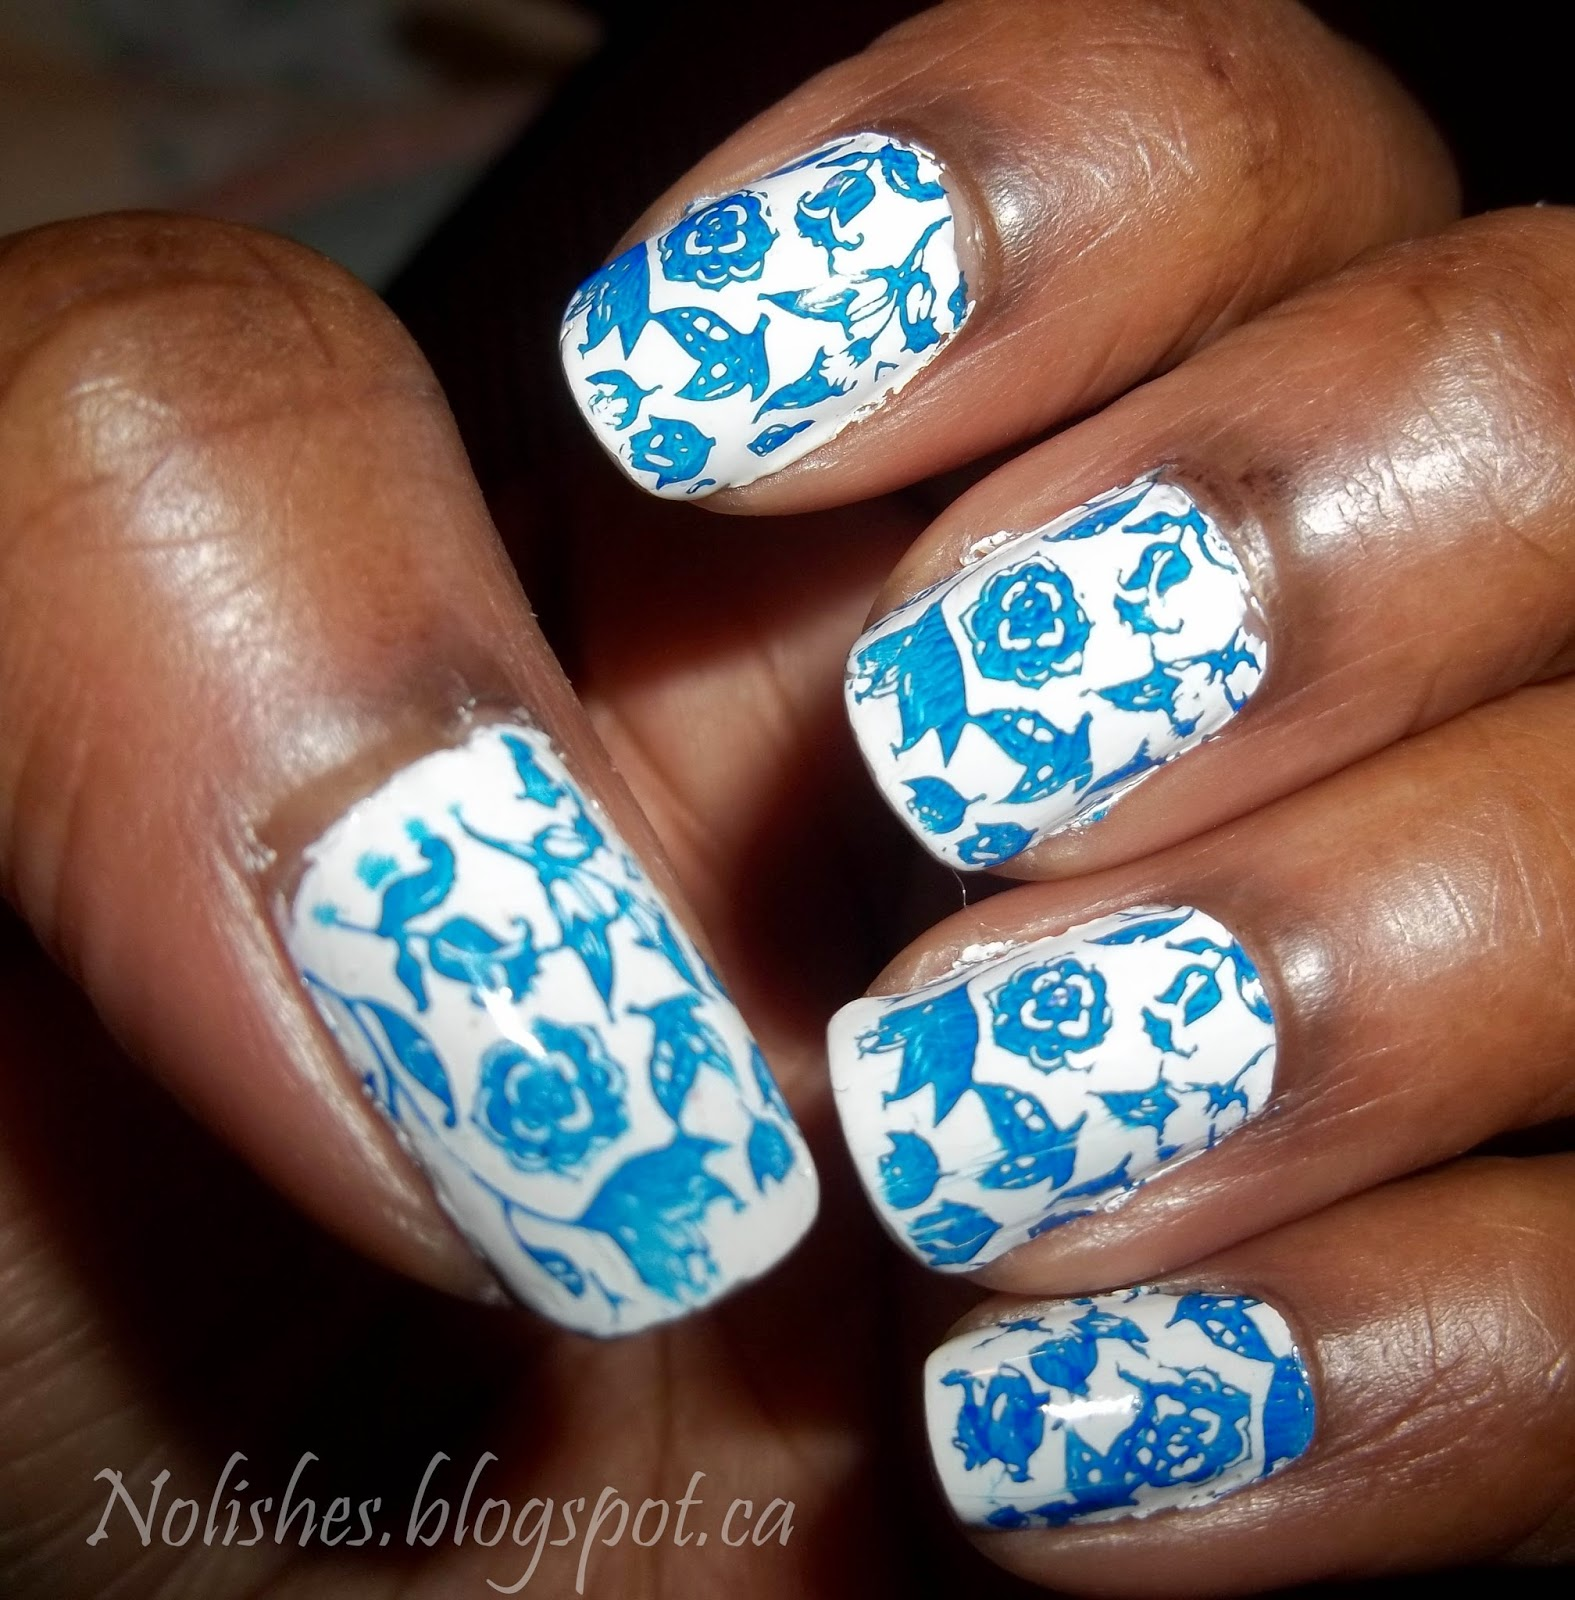 Blue and White Porcelain Nail Stamping Manicure, using Moyou London Pro Collection Plate 07. Polishes used: NYC 'French White Tip', stamped with Maybelline Color Show 'Midnight Blue'.